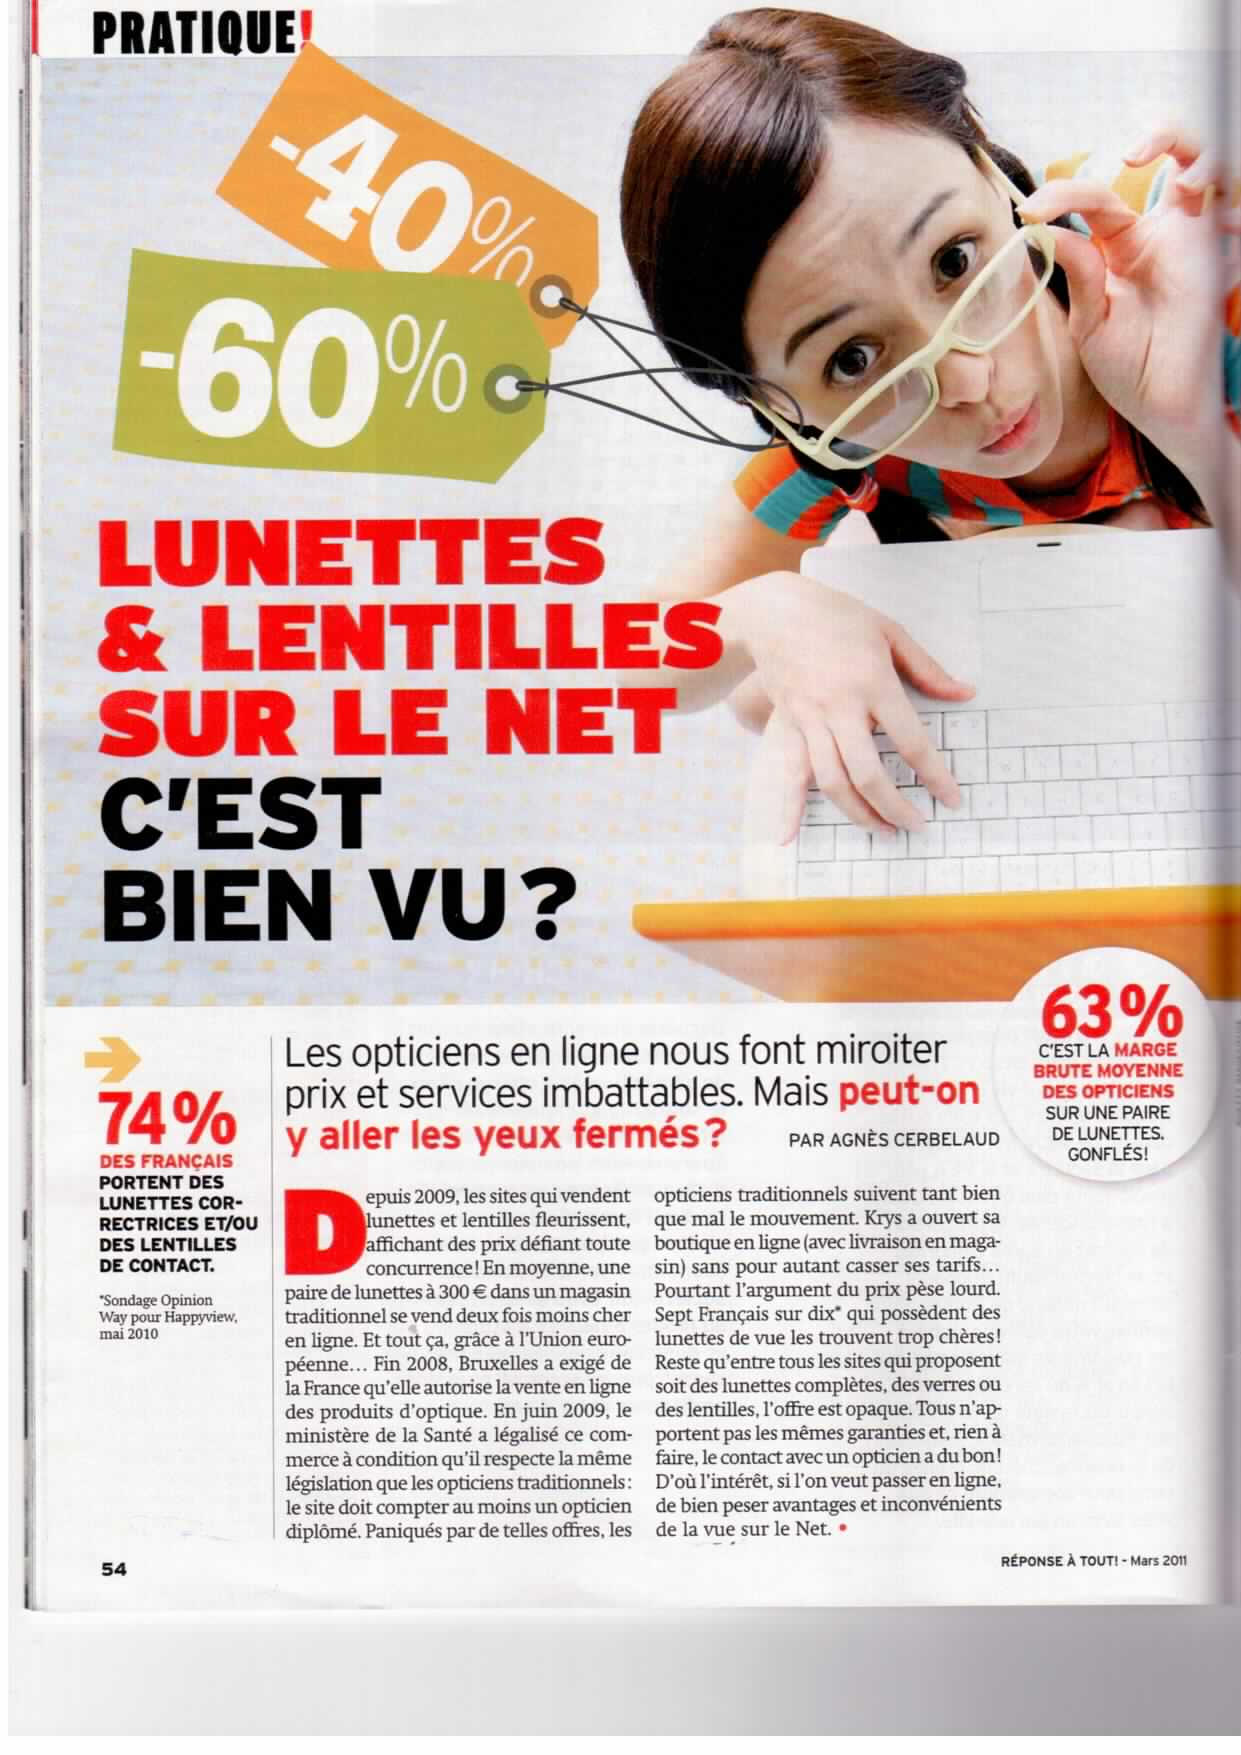 Opticiens en ligne